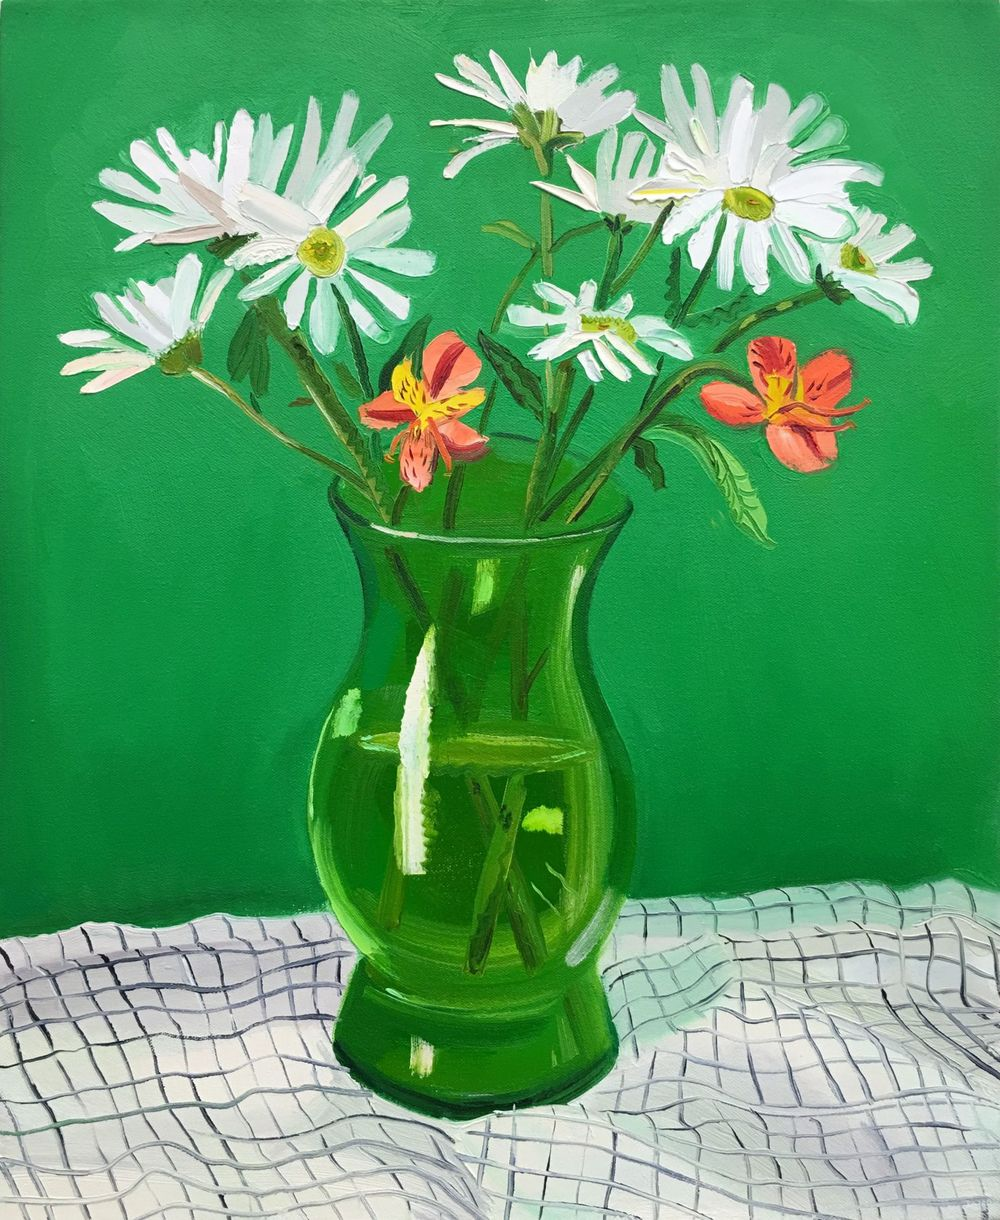 Green Vase,2016. Oil on canvas. 18 x 22 inches. by Nikki Maloof.